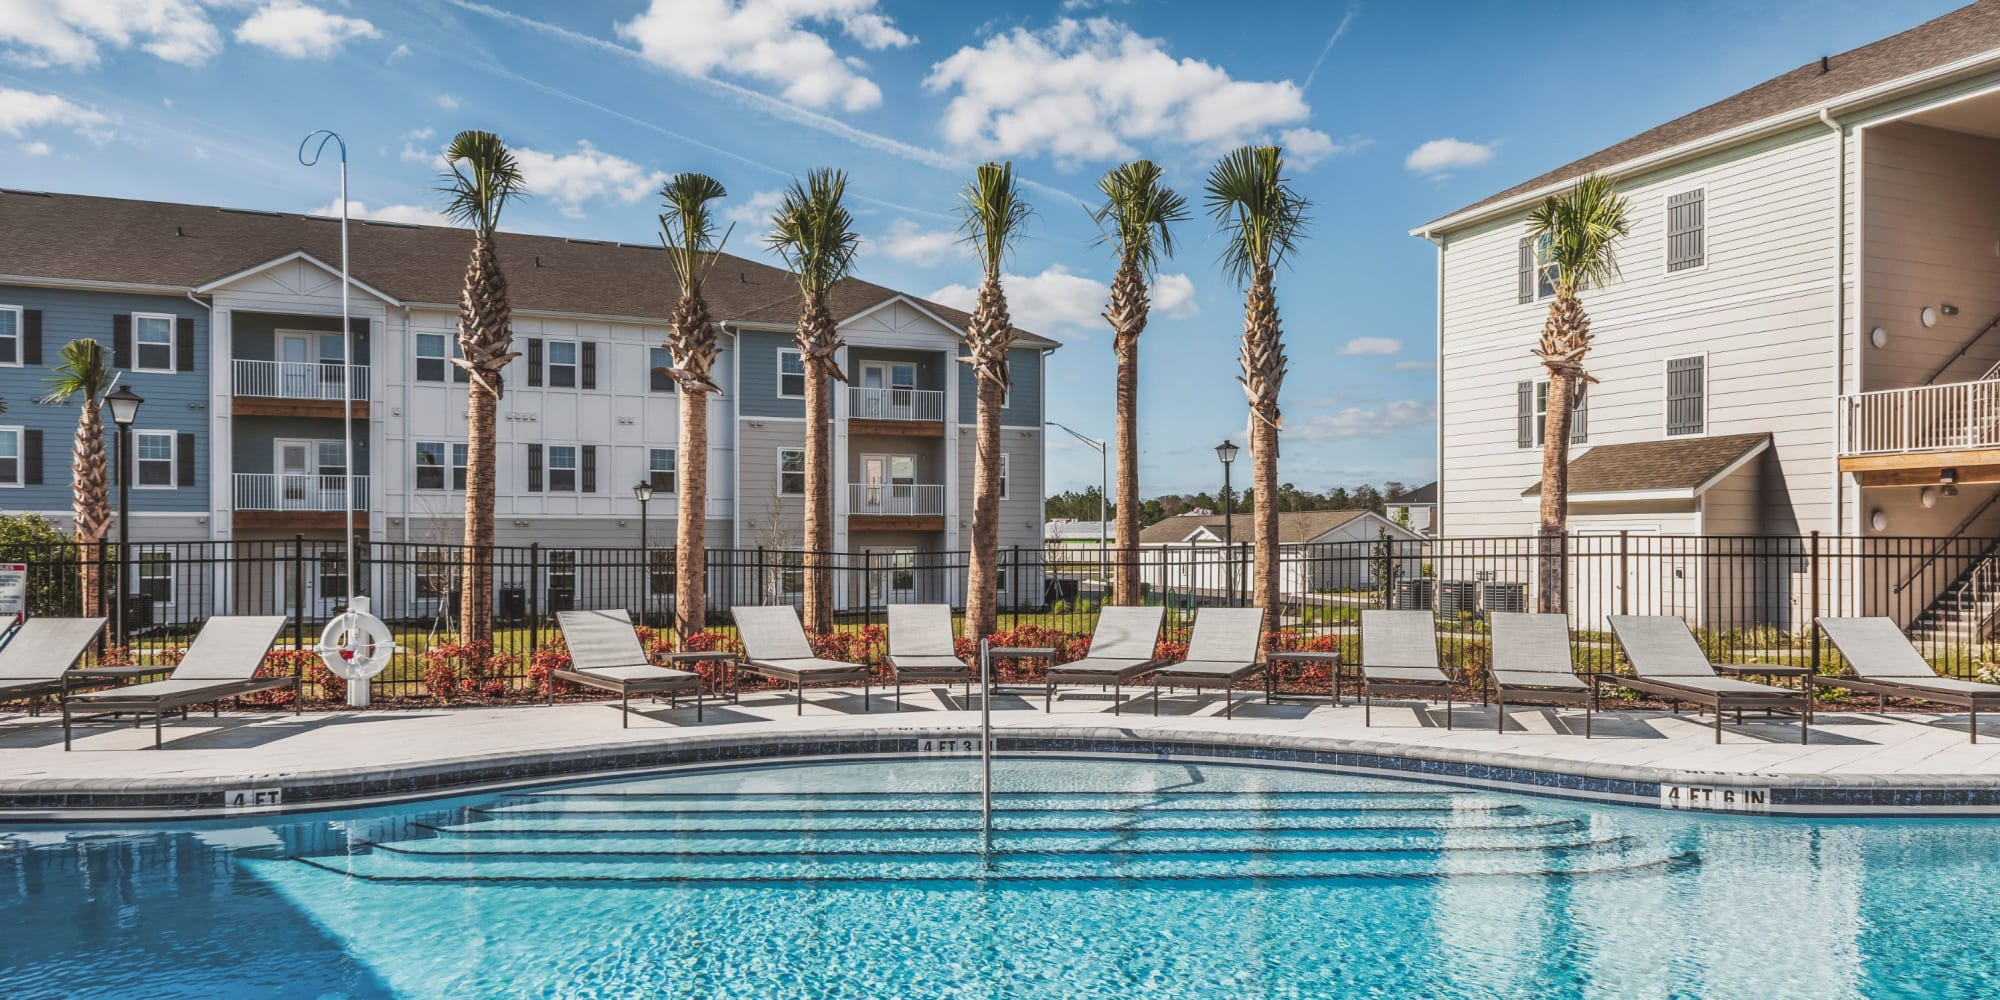 Apartments at Argyle at Oakleaf Town Center in Jacksonville, Florida